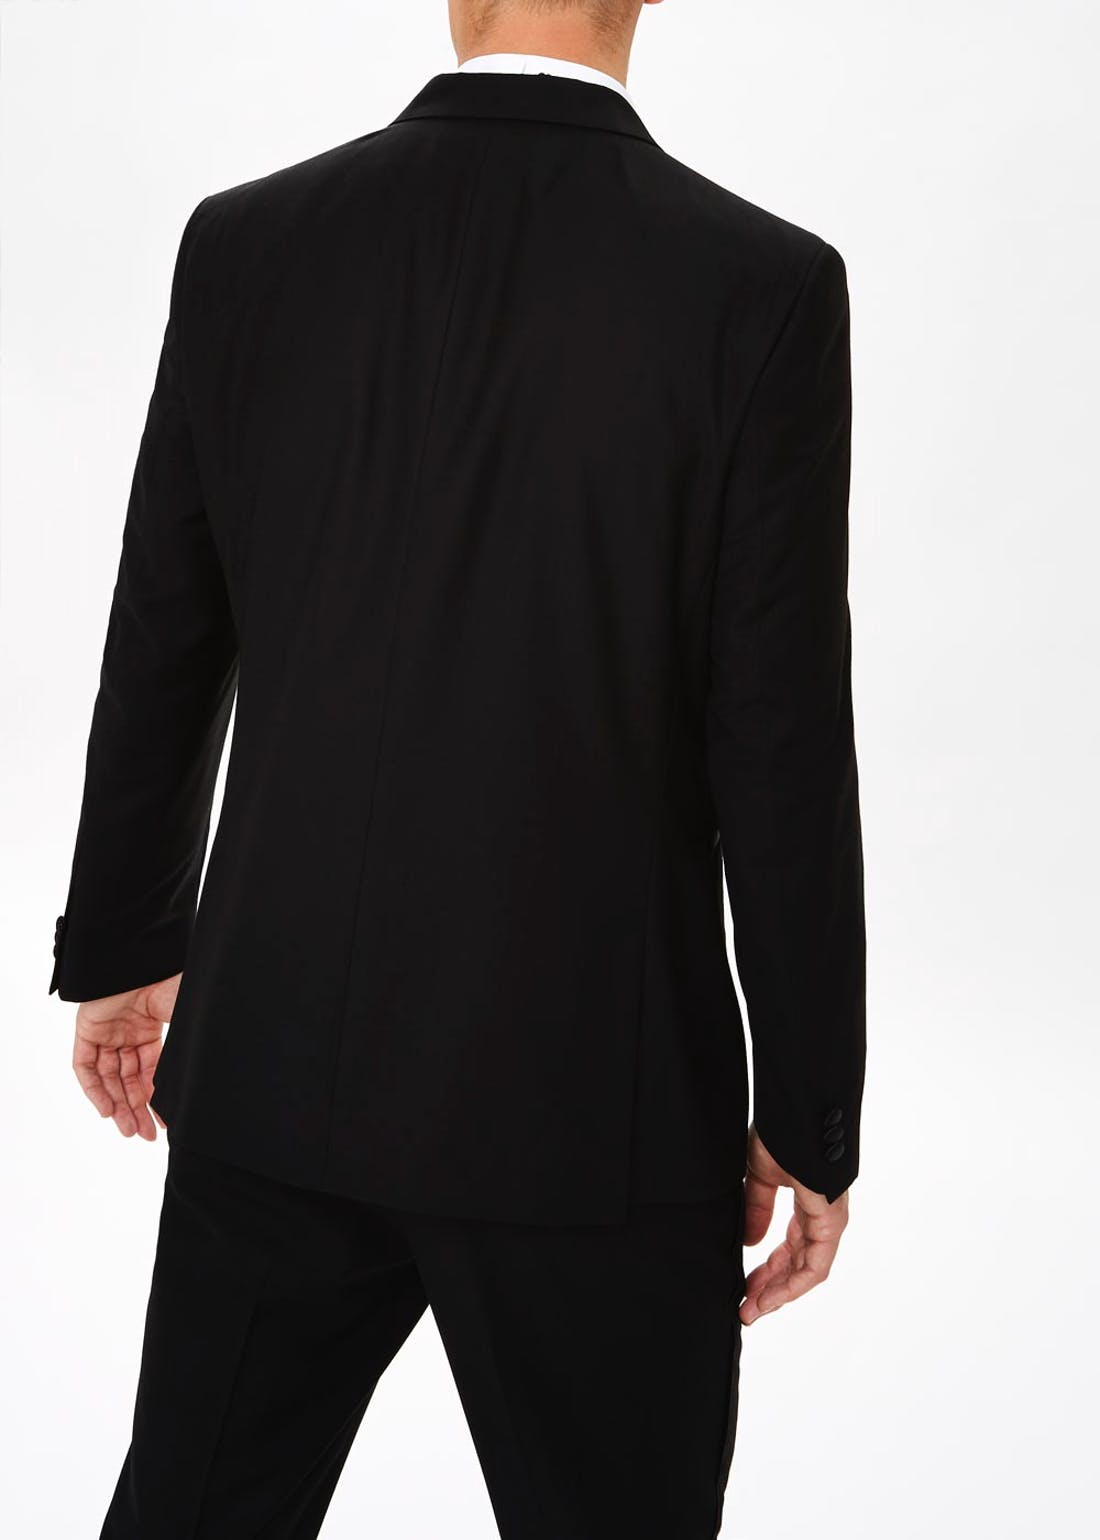 Taylor & Wright Firth Tailored Fit Tuxedo Jacket